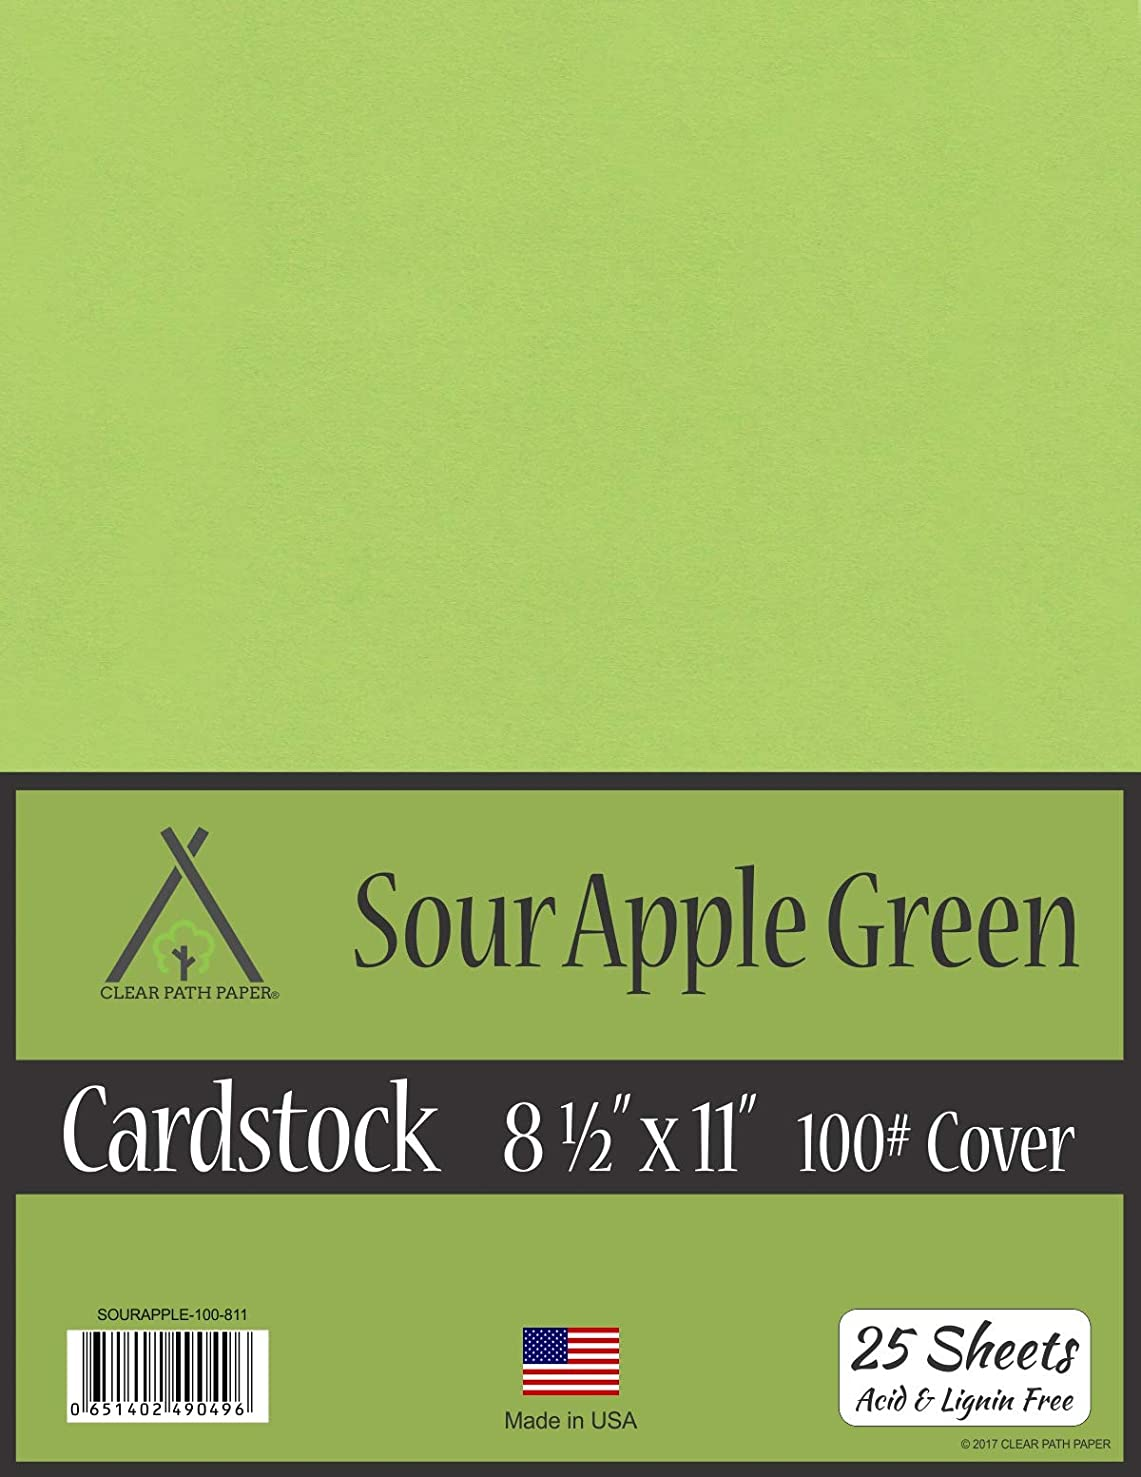 Sour Apple Green Cardstock - 8.5 x 11 inch - 100Lb Cover - 25 Sheets